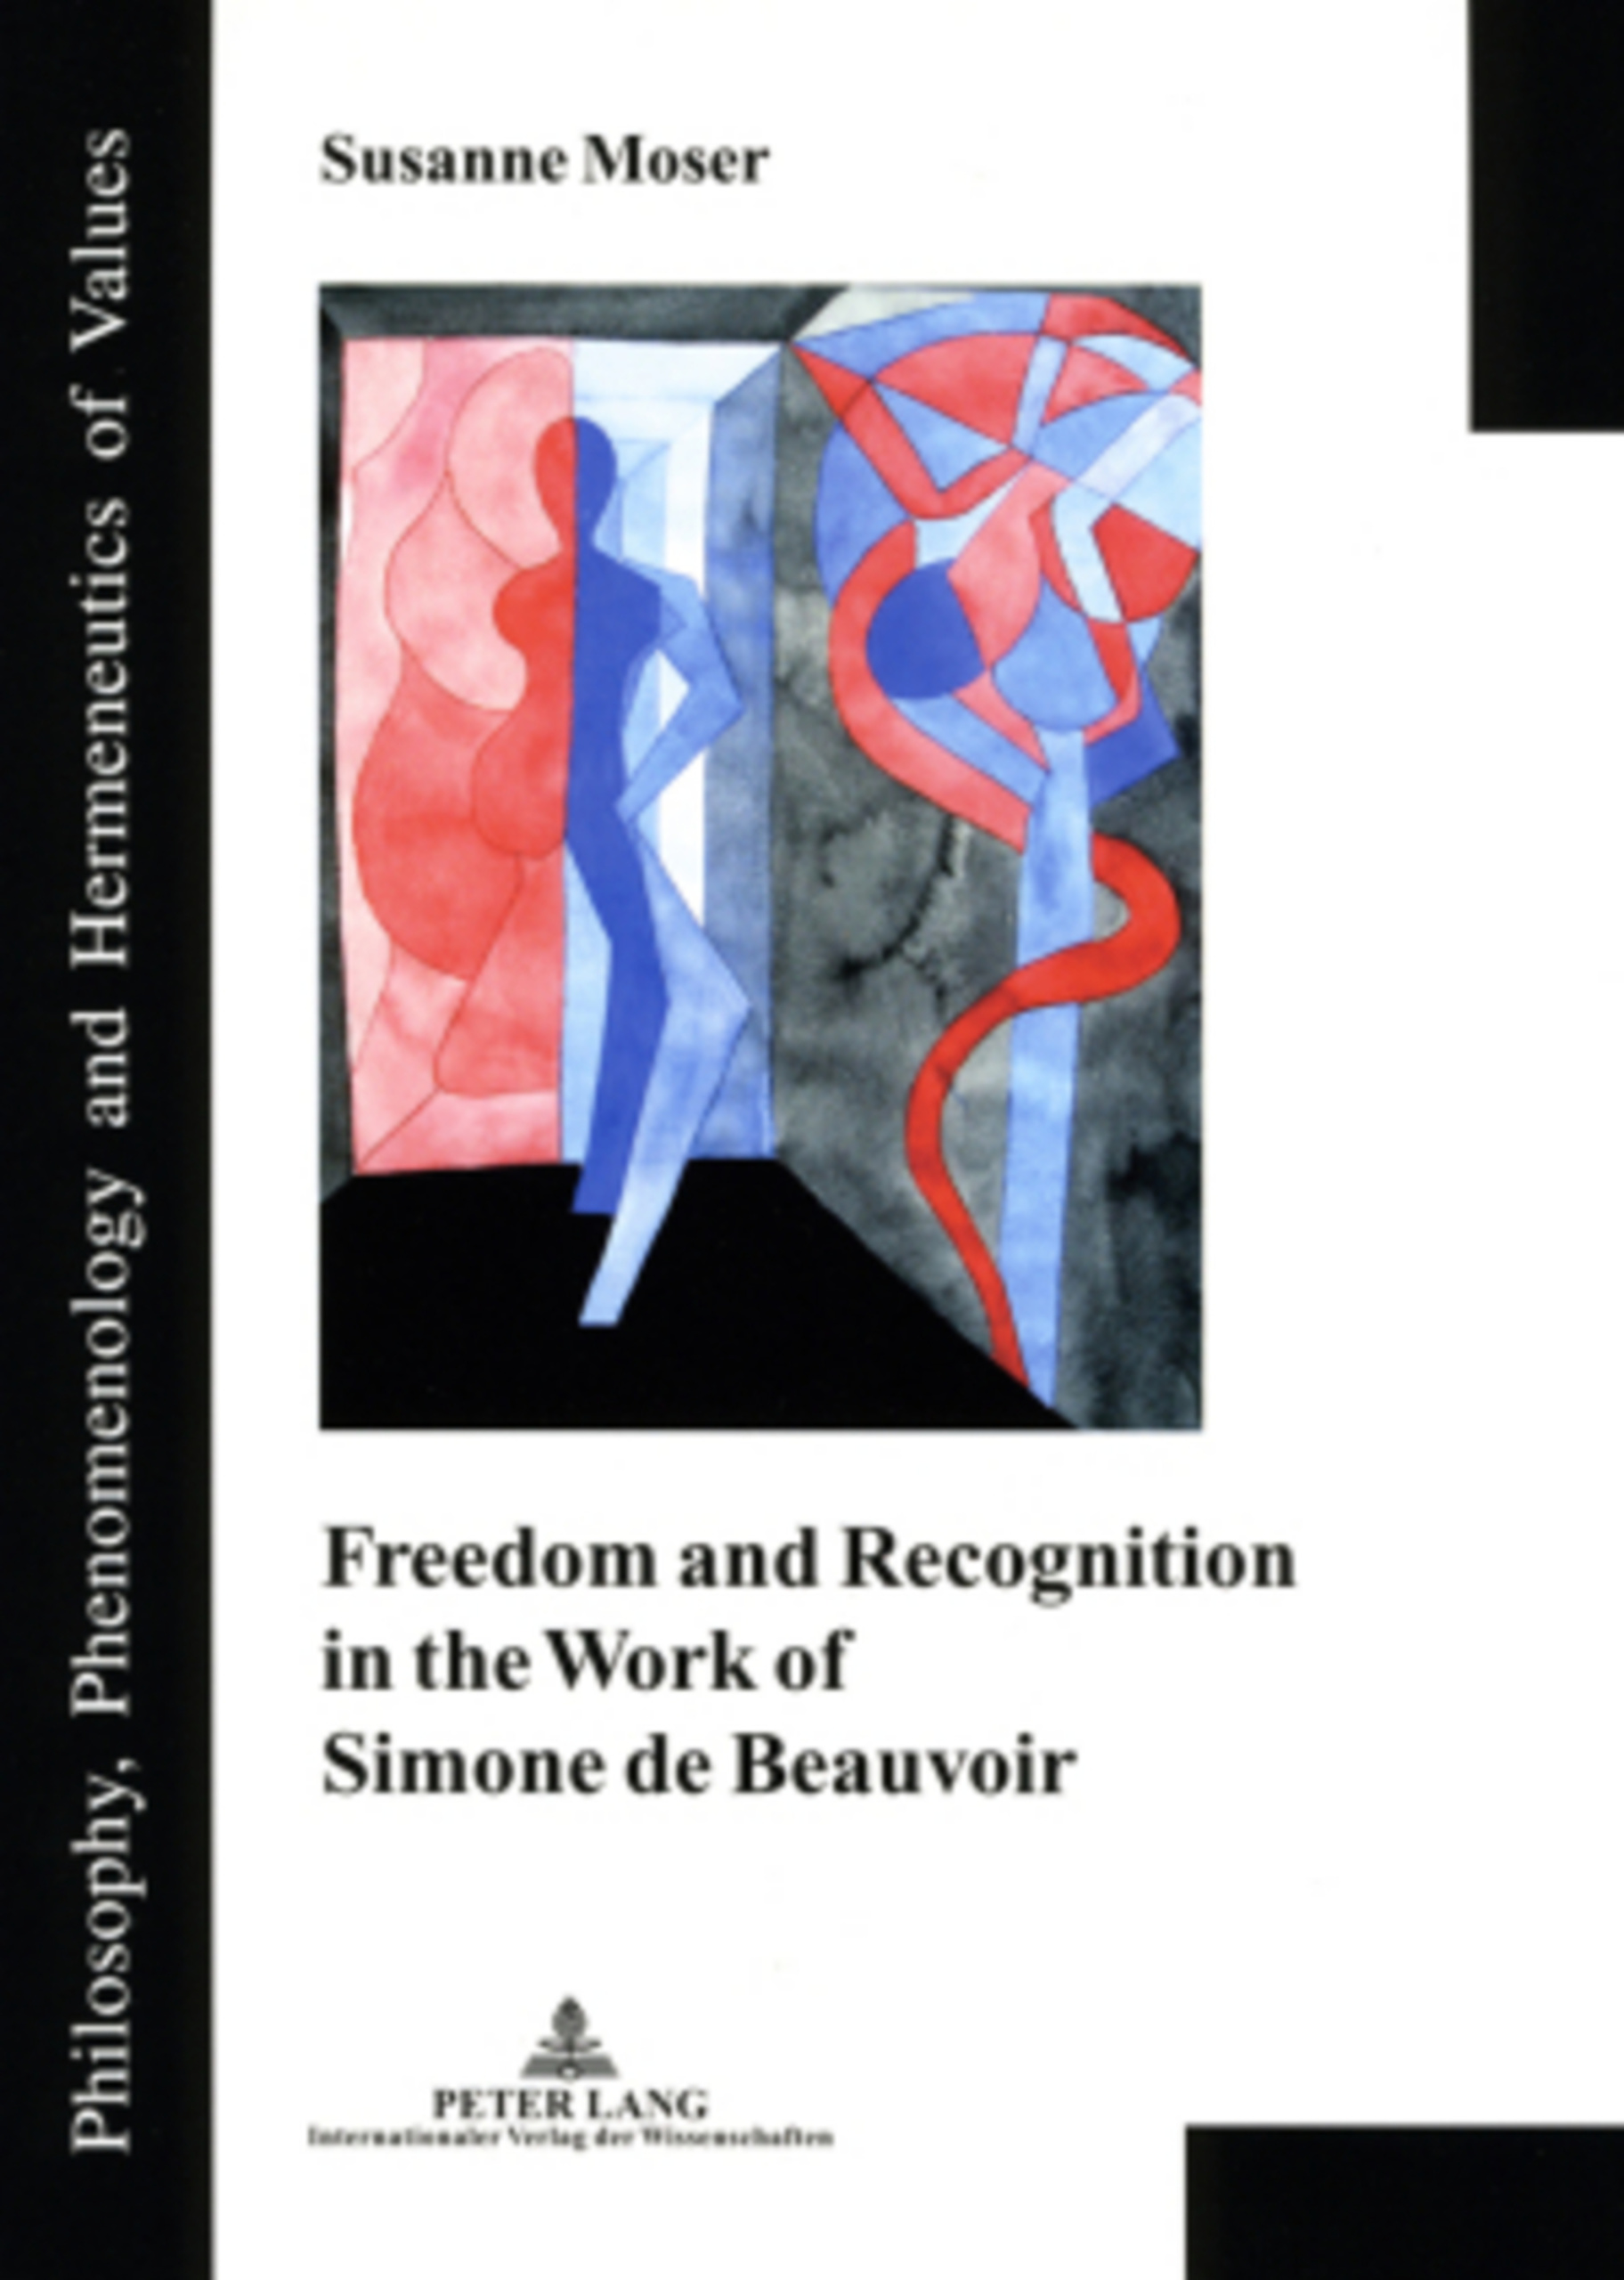 Title: Freedom and Recognition in the Work of Simone de Beauvoir